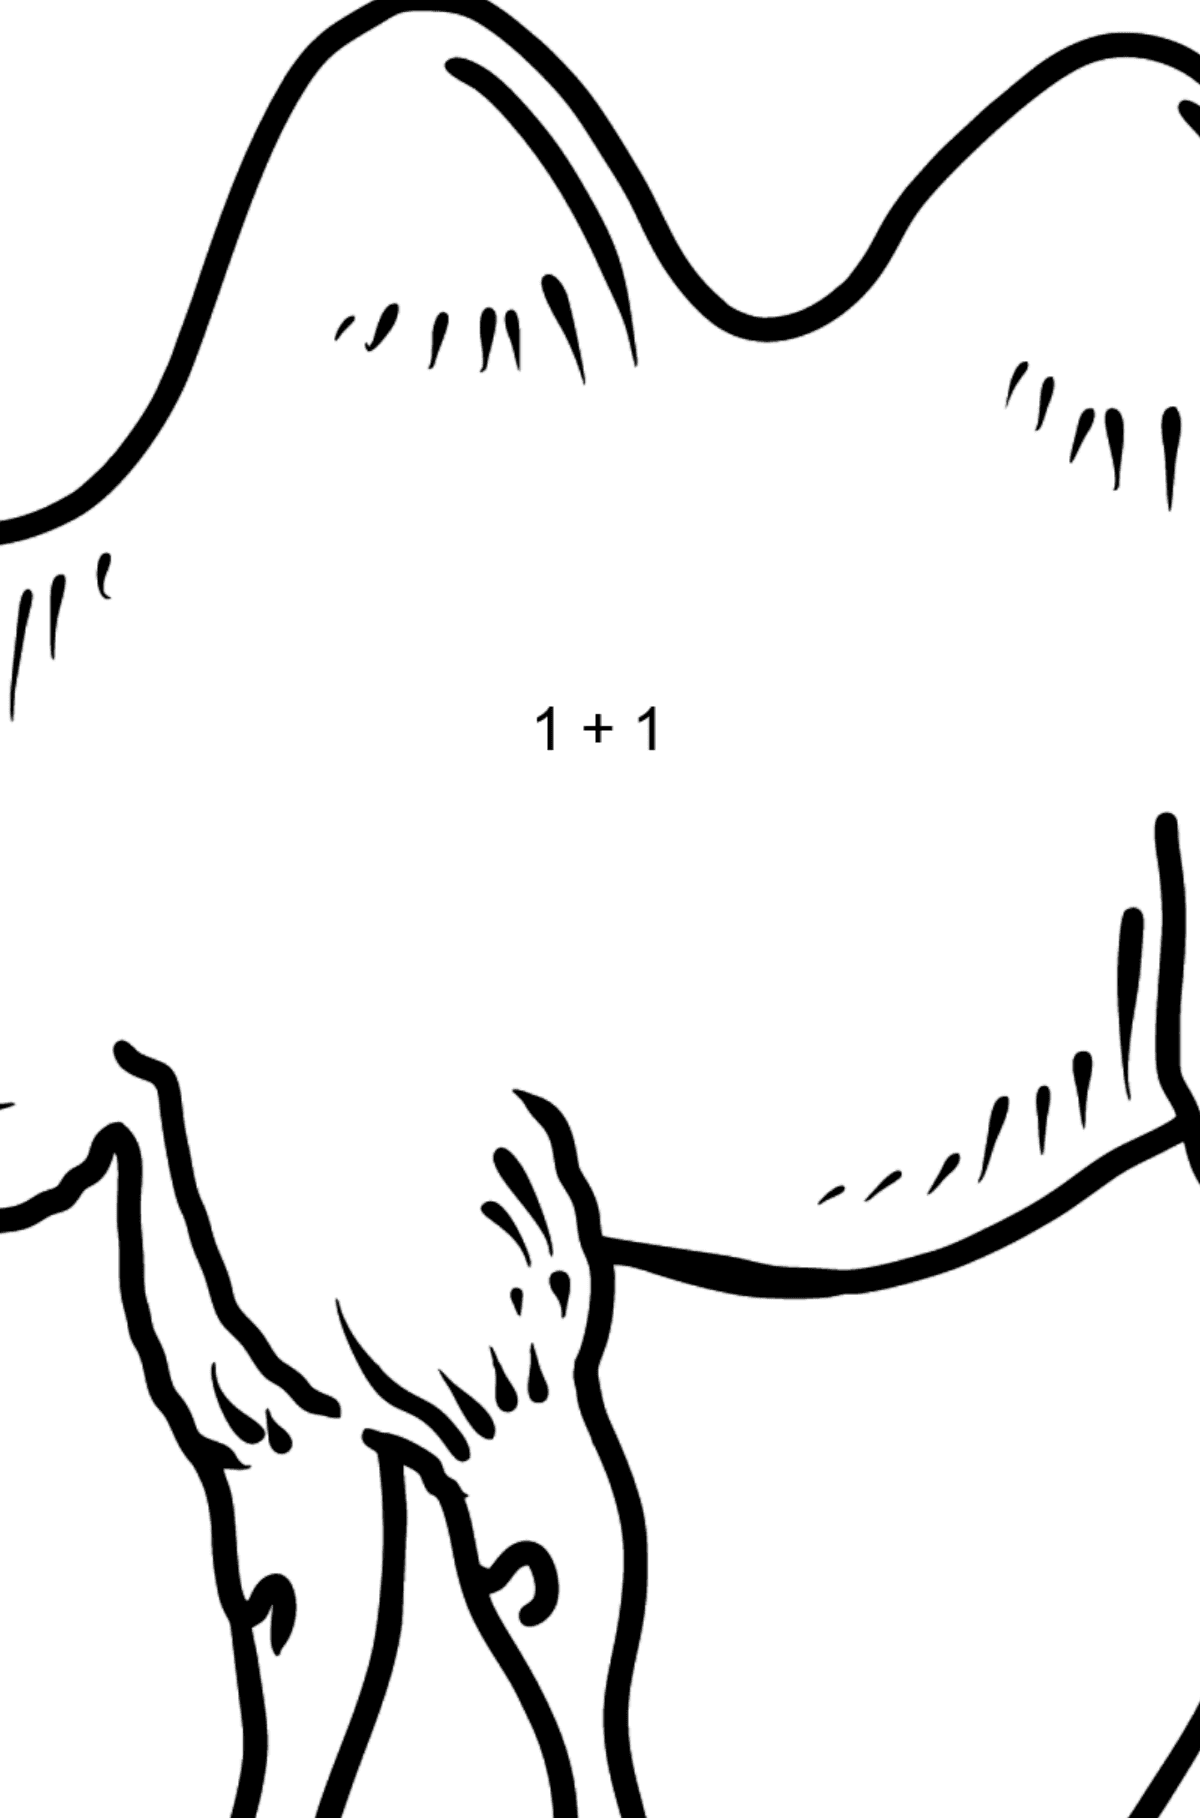 Camel coloring page - Math Coloring - Addition for Kids